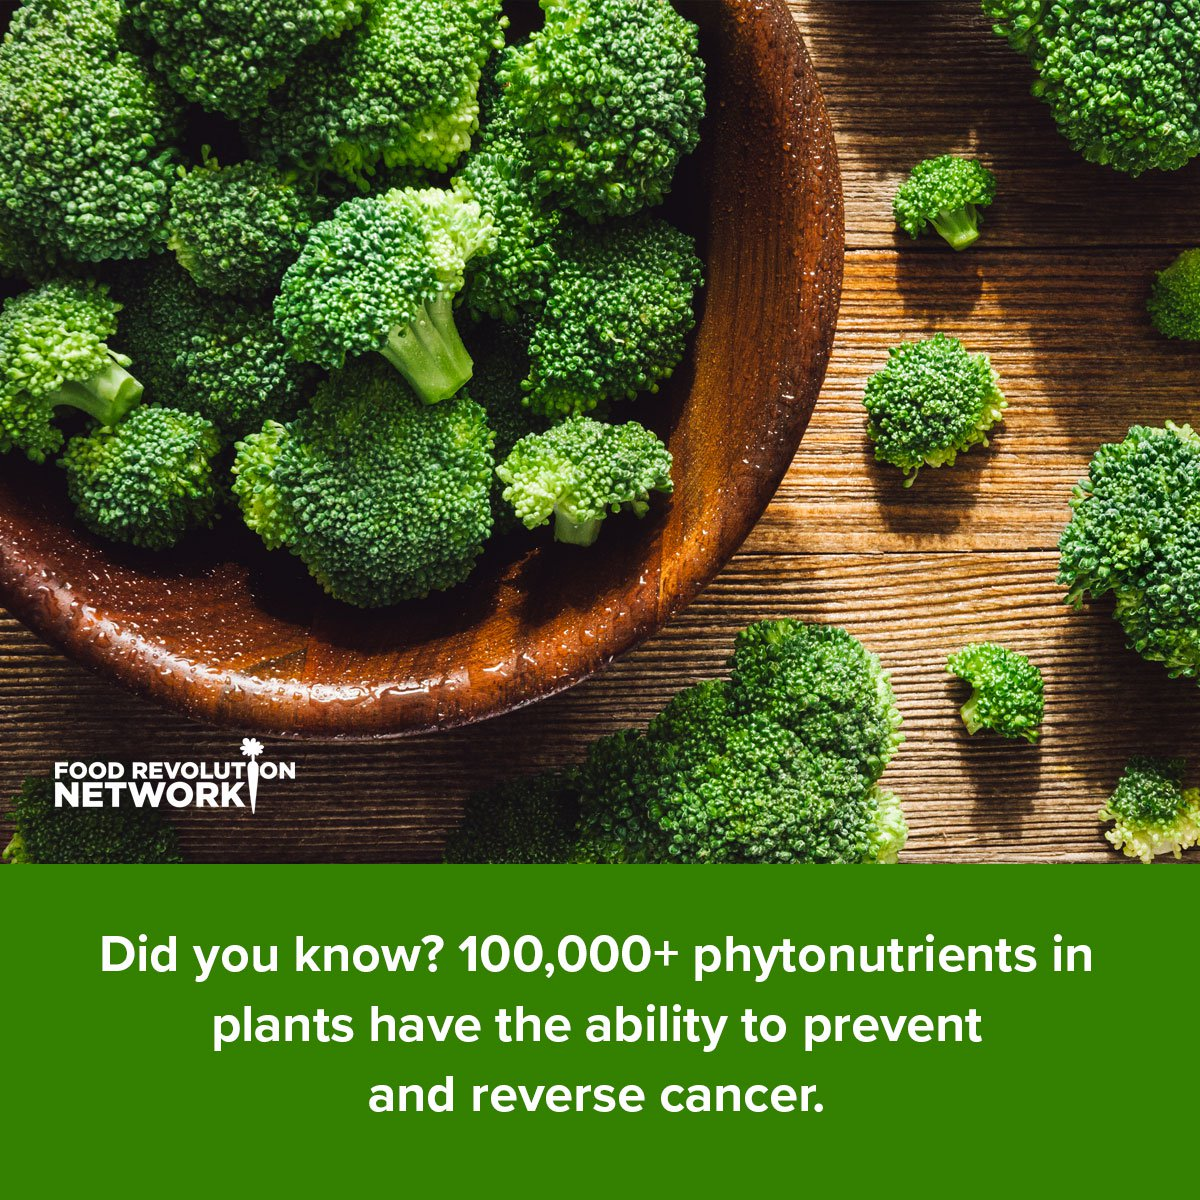 Did you know? 100,000+ phytonutrients in plants have the ability to prevent and reverse cancer.